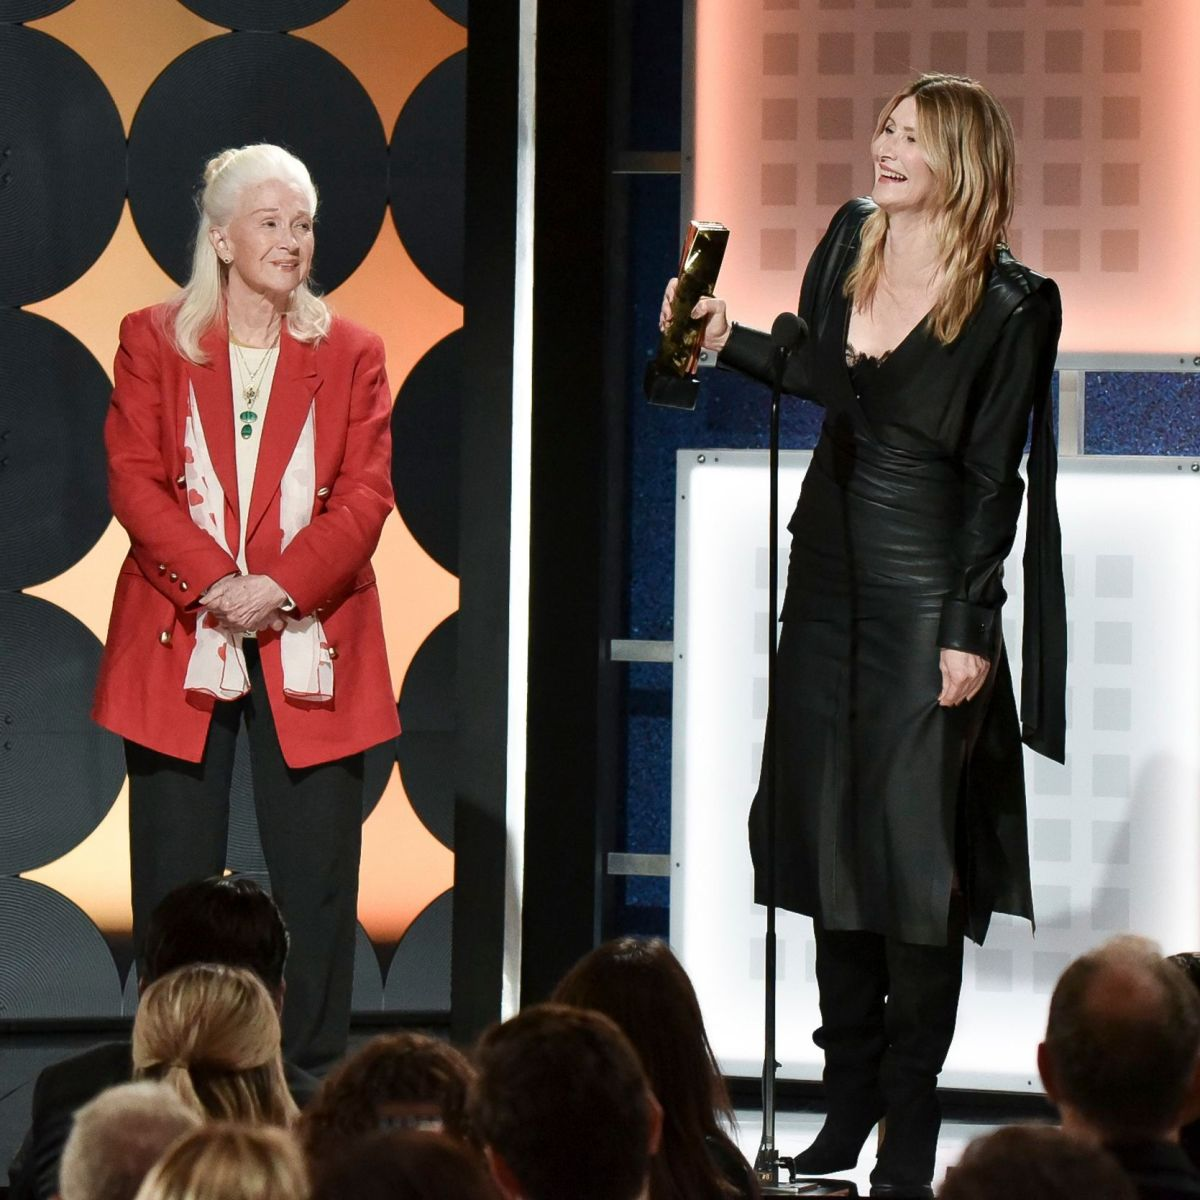 Laura Dern, 52, and Mom Diane Ladd, 84, Are All Smiles While Making Rare Red Carpet Appearance